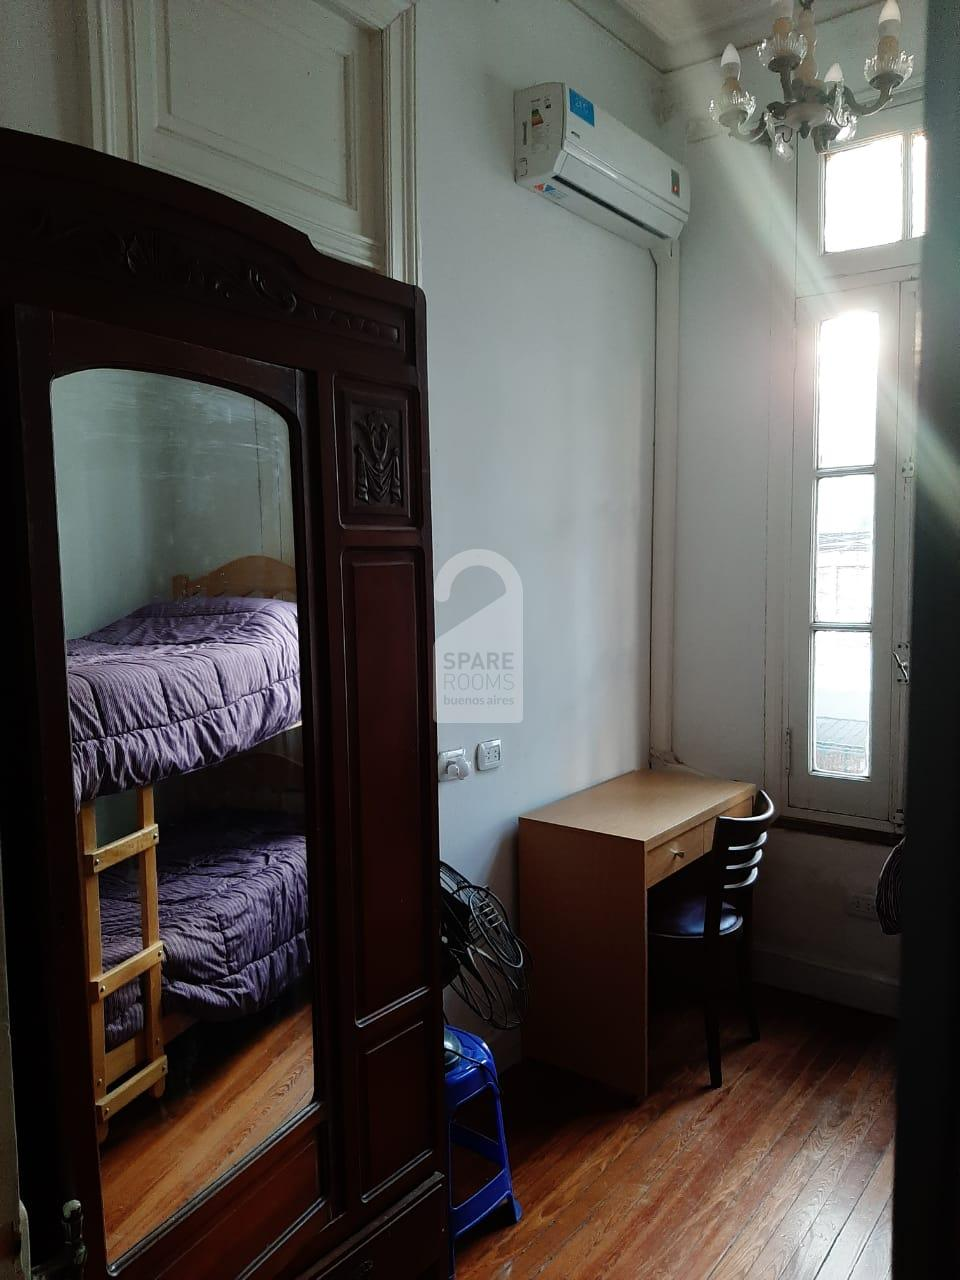 The Room in the apartment